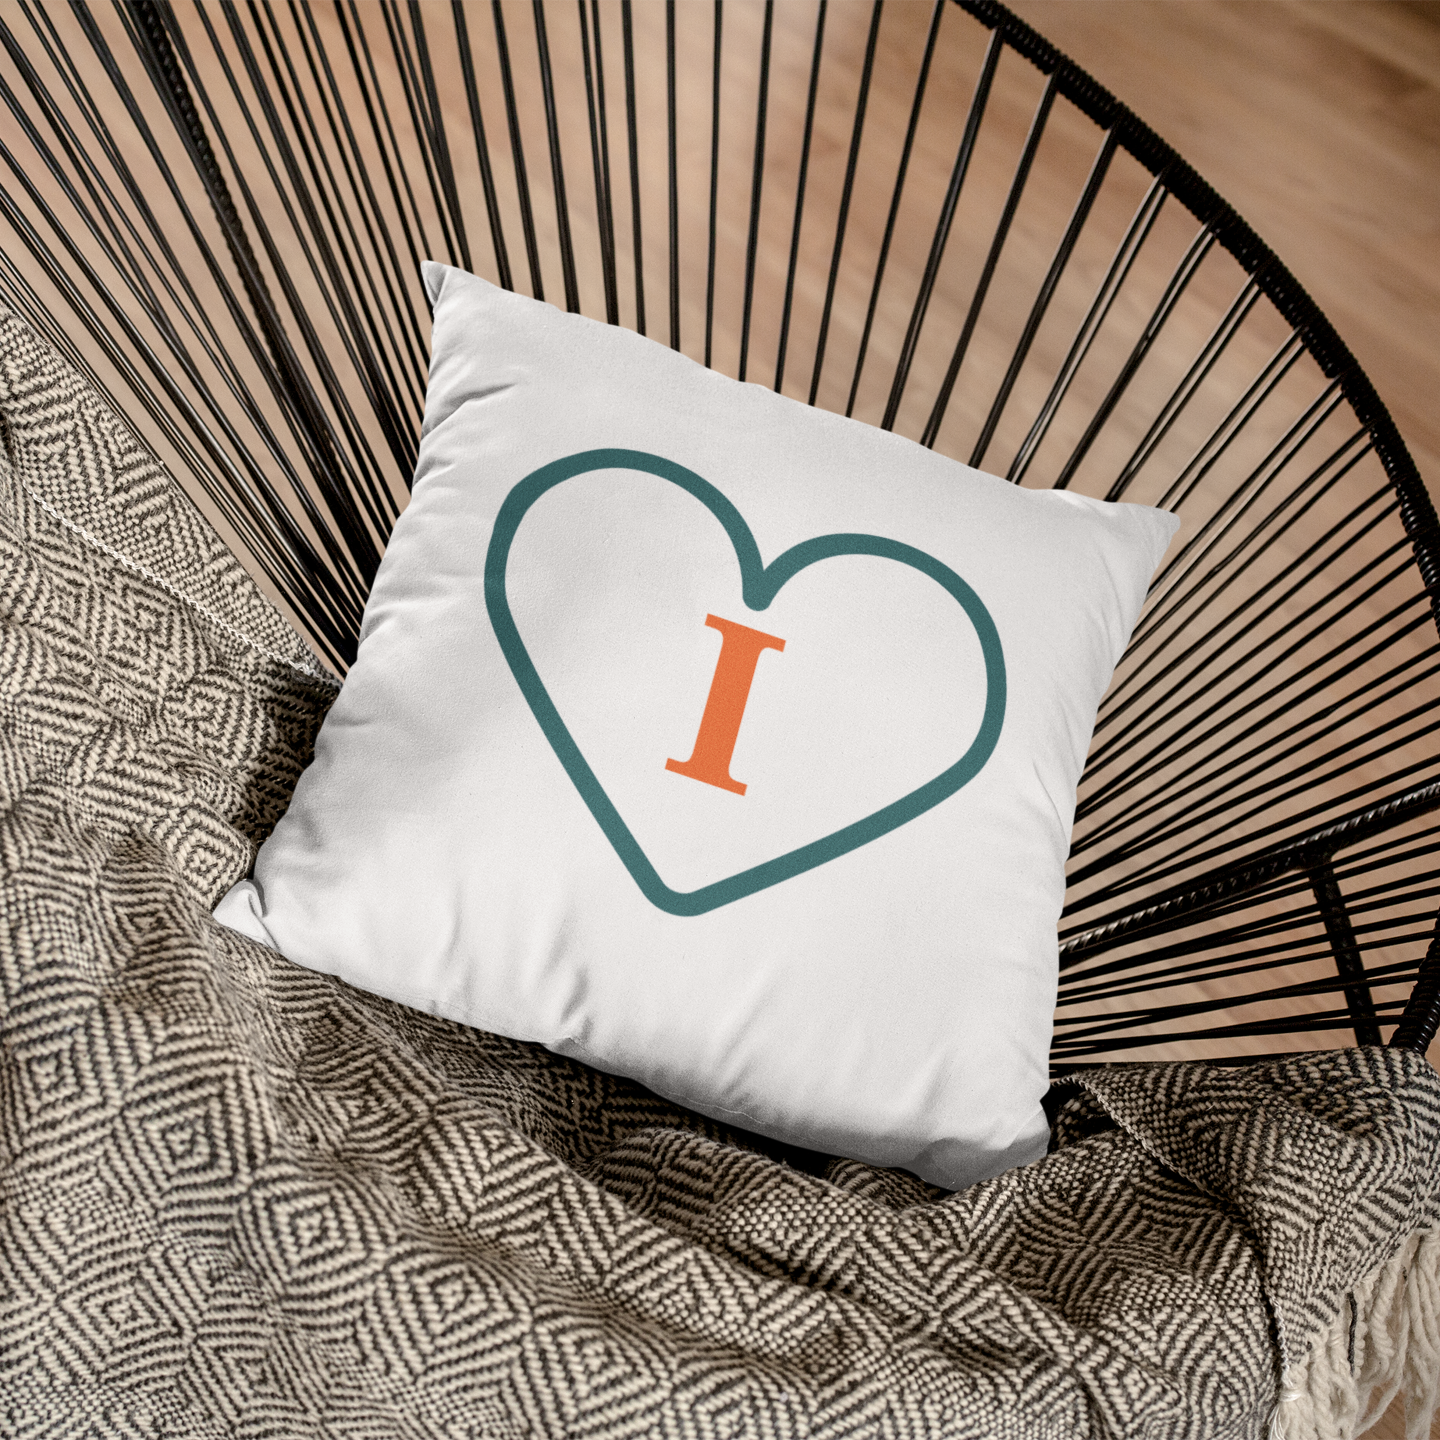 Live, Life, Love - 100% Linen Cushion Cover Each Sold Separately